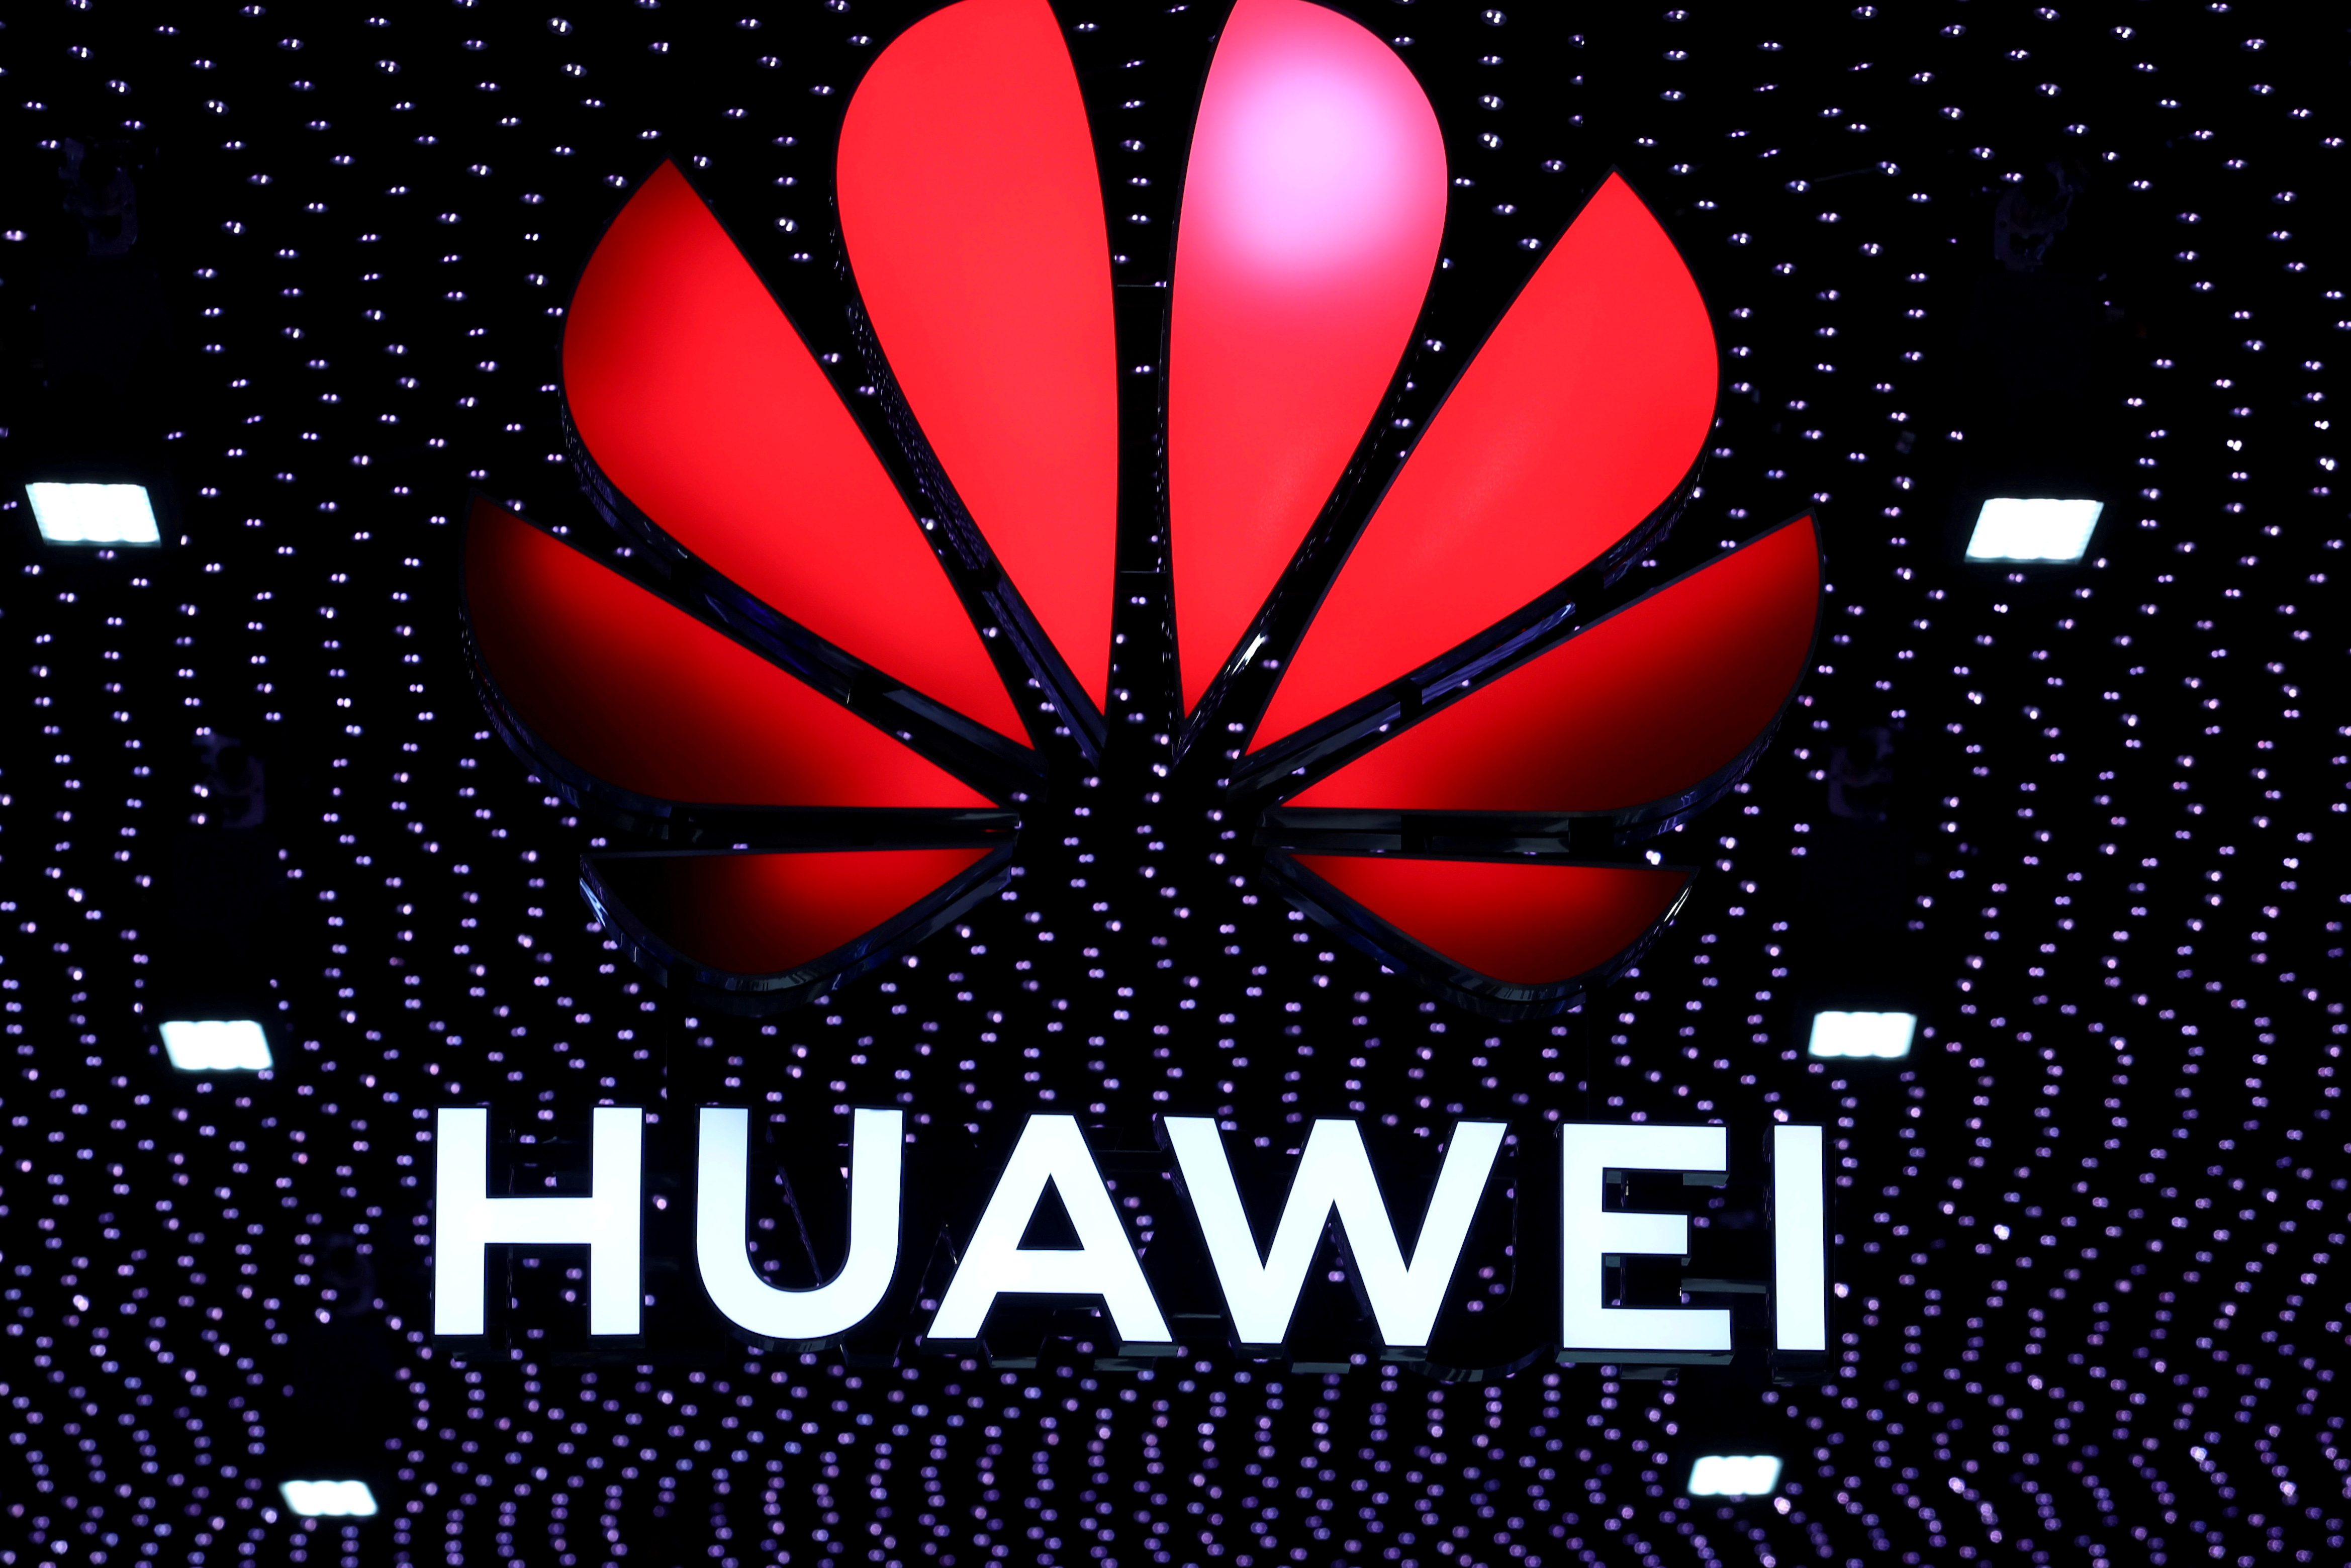 In US charm offensive, China's Huawei launches ad to combat